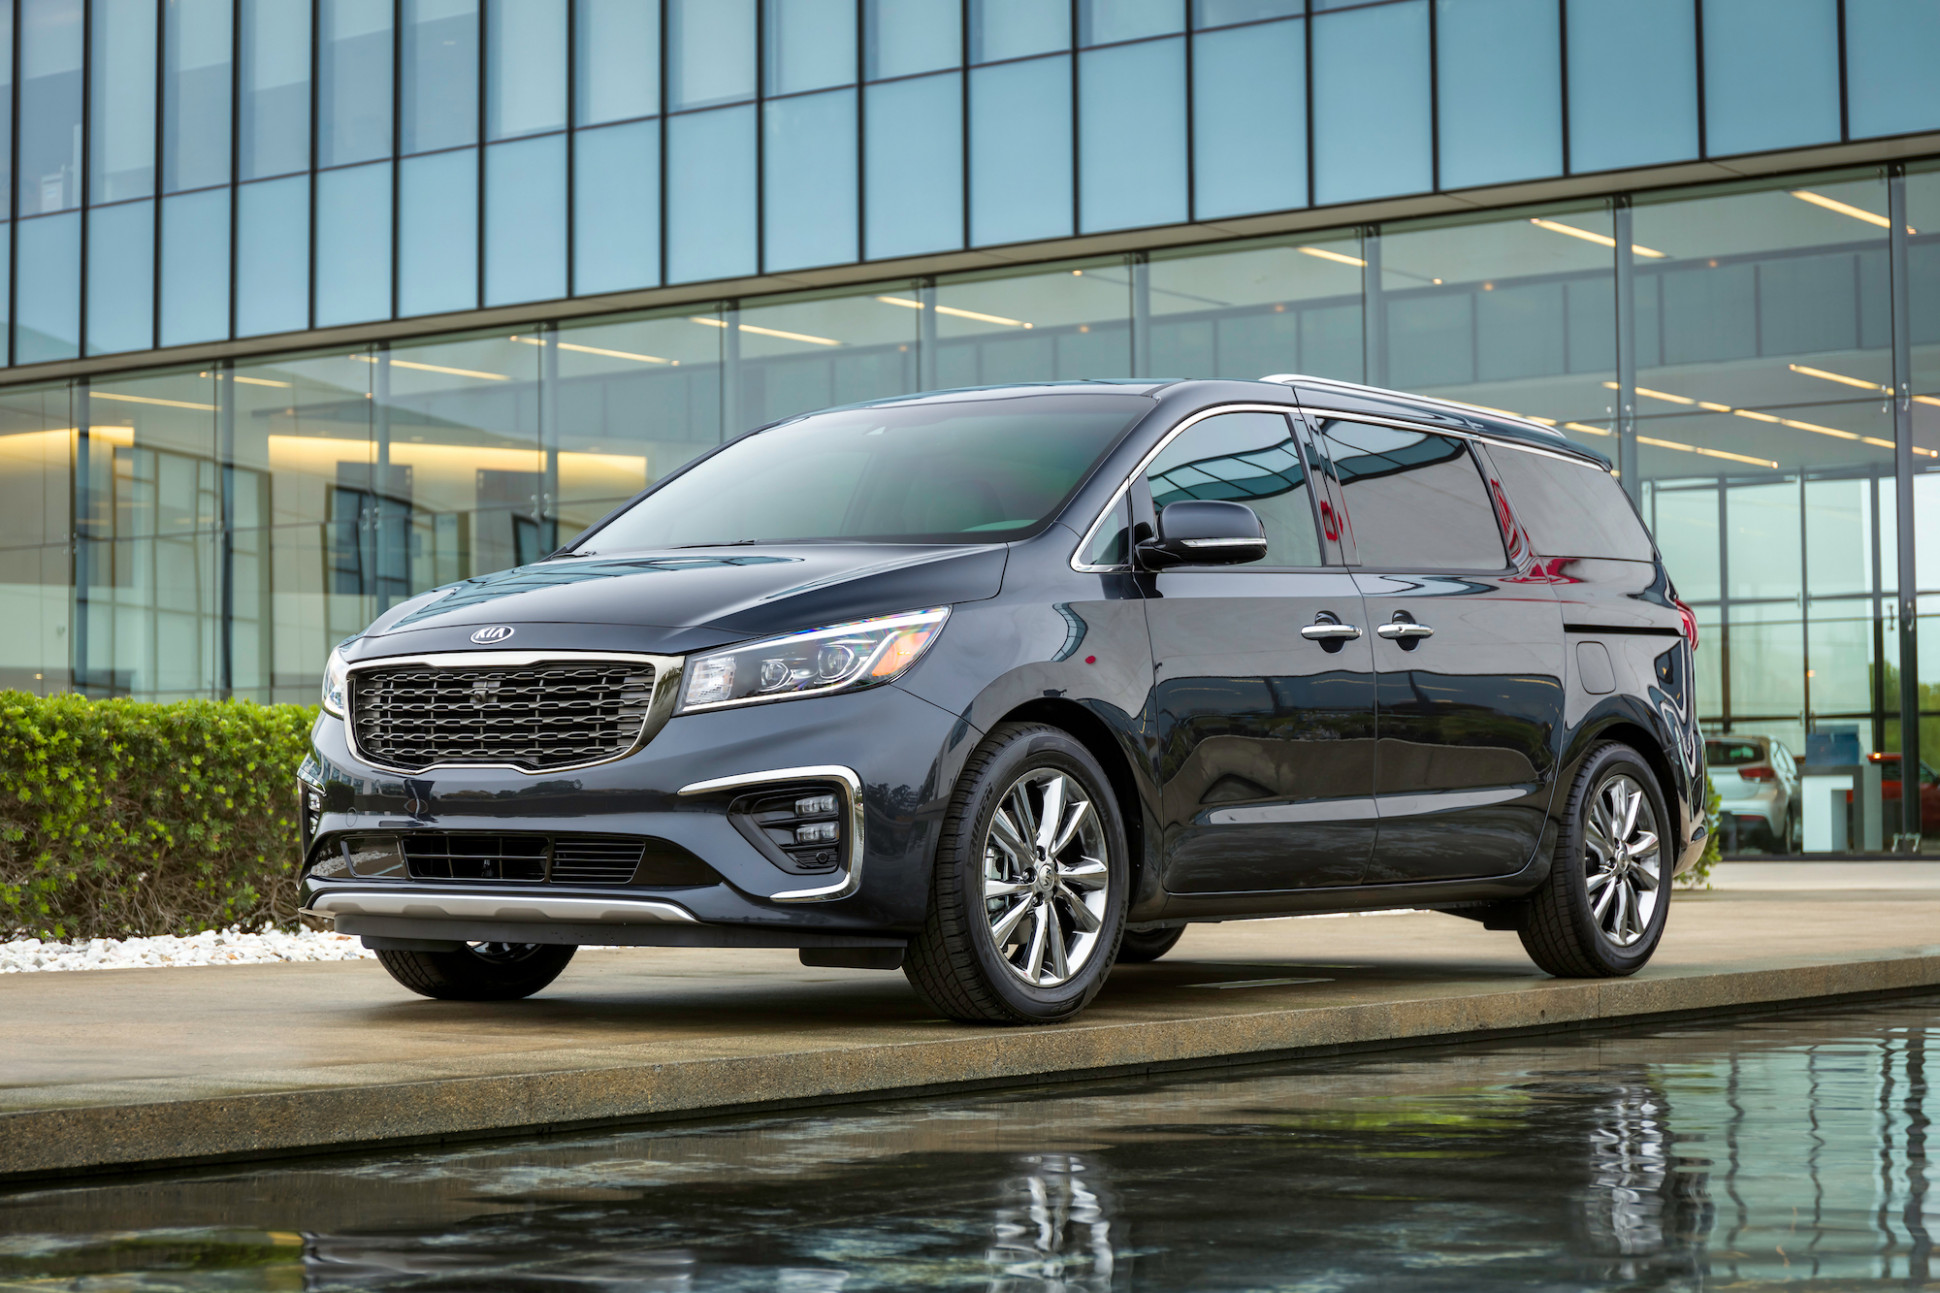 7 Kia Sedona Review, Ratings, Specs, Prices, and Photos - The ...